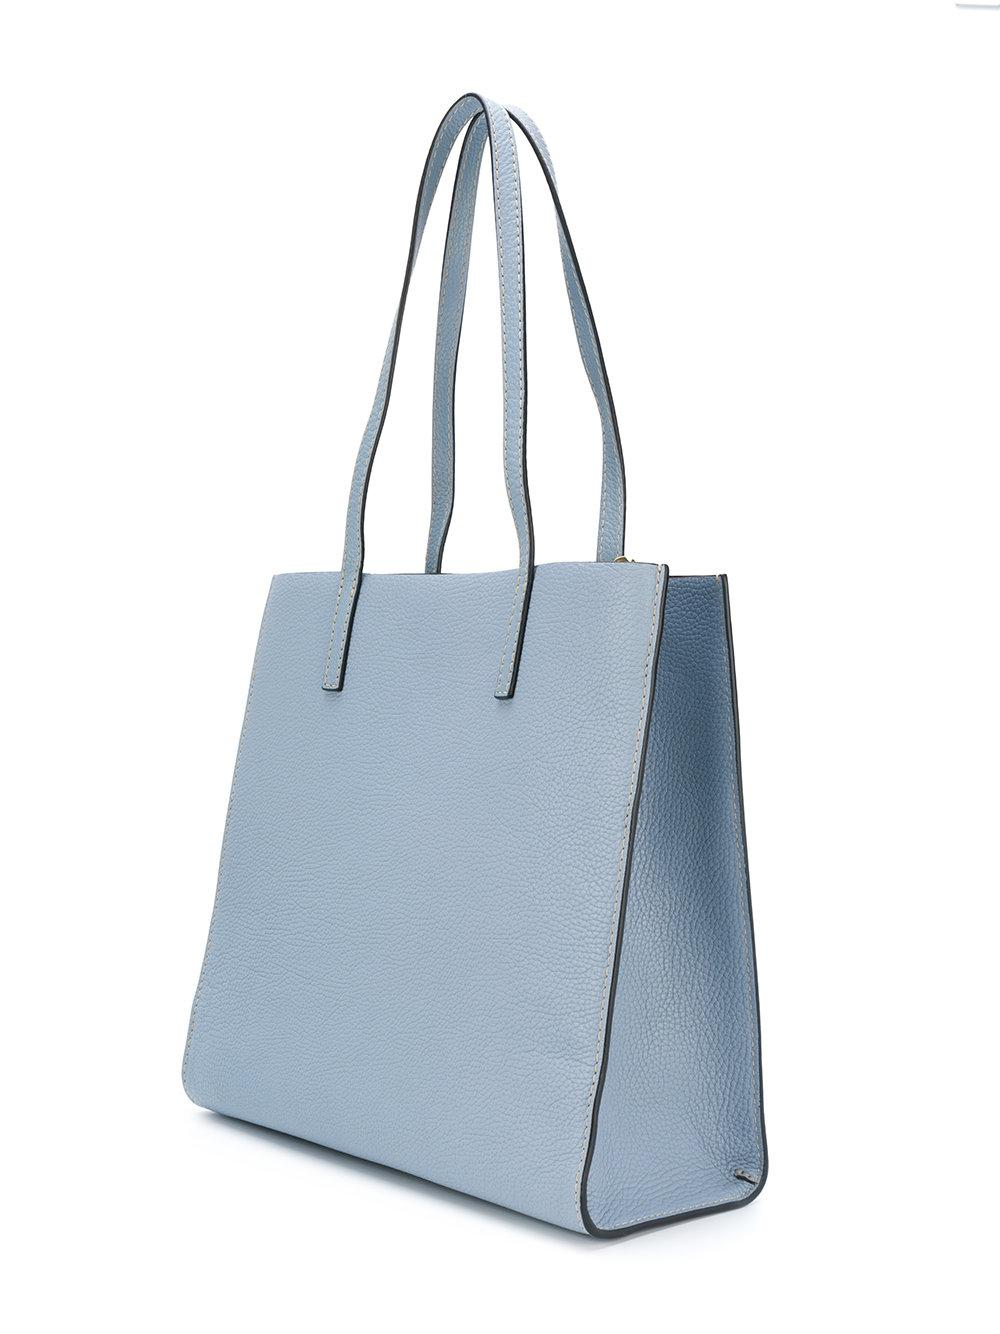 Marc Jacobs Leather The Bold Grind Tote in Blue